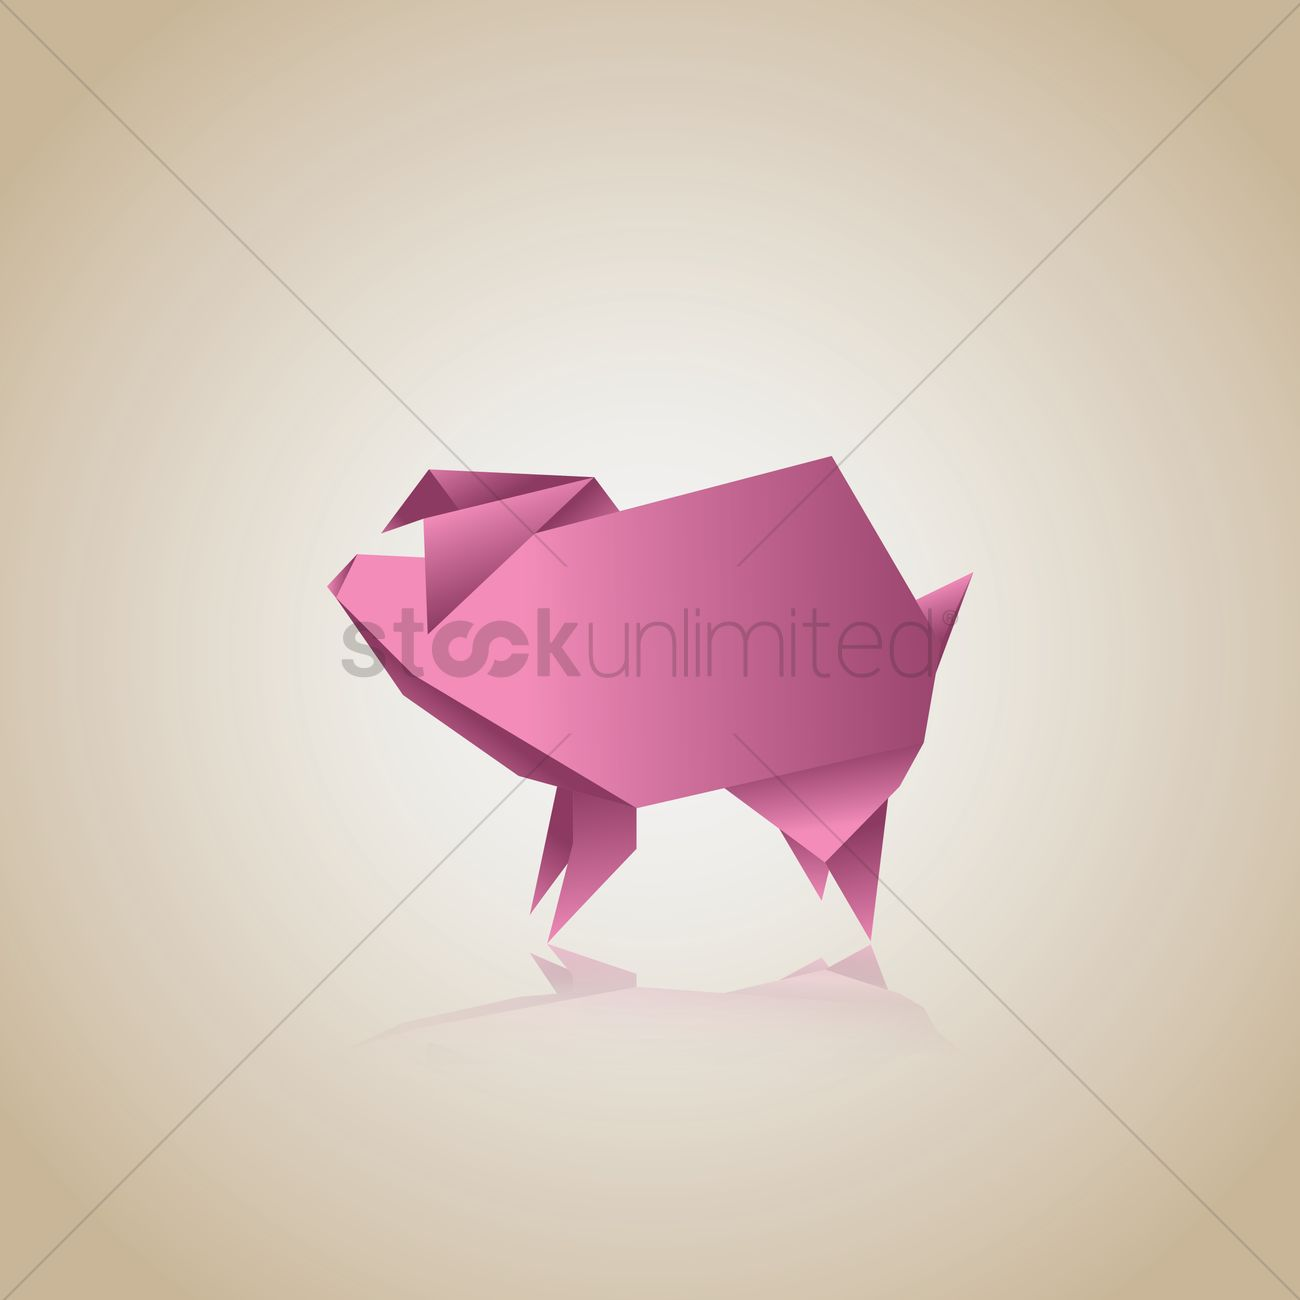 Step by step instructions how to make origami pig pigs t - photo#24